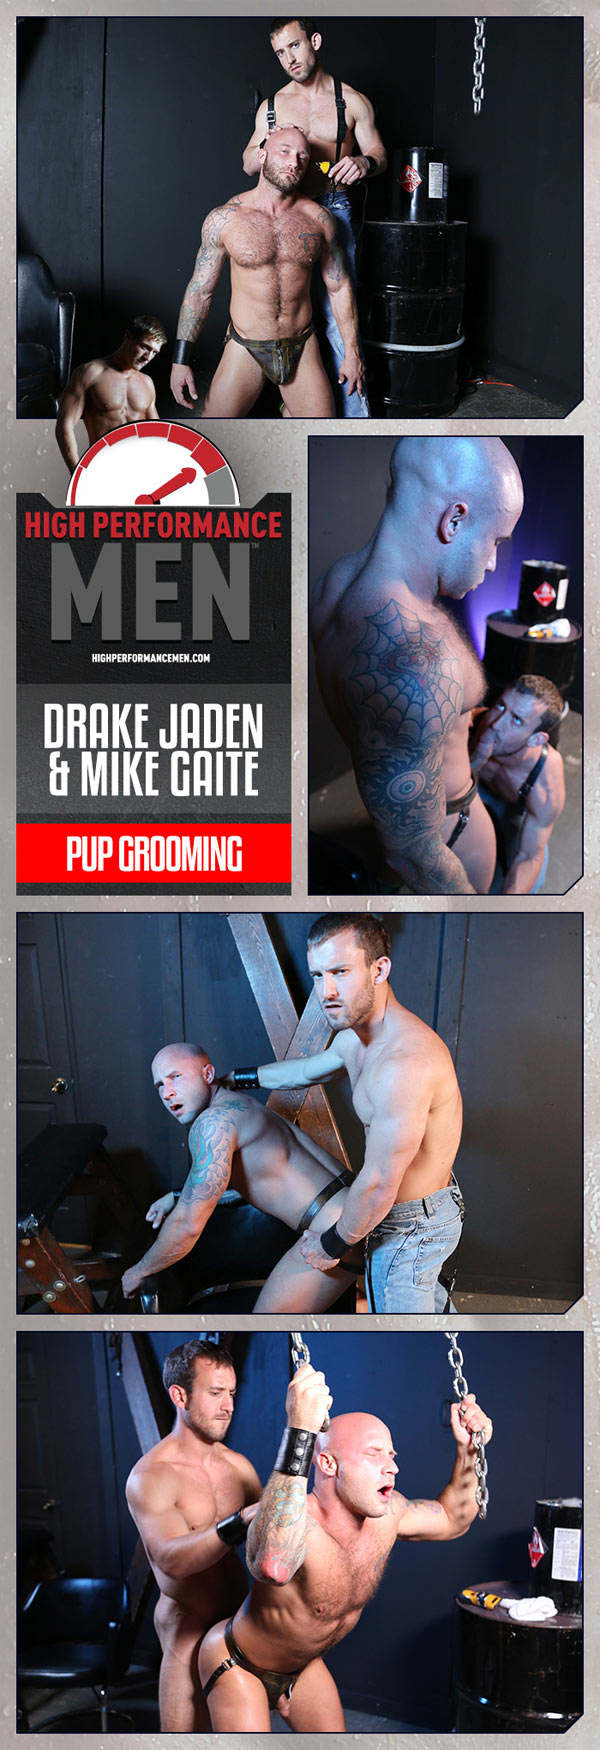 Pup Grooming (Drake Jaden & Mike Gaite) at High Performance Men